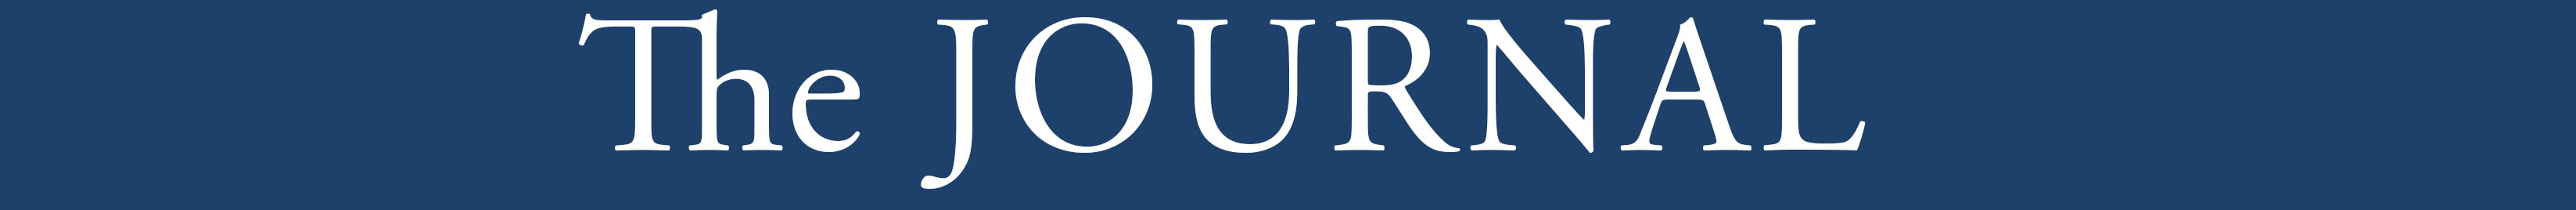 Award-winning, student-run, weekly campus newspaper of the University of Illinois, Springfield